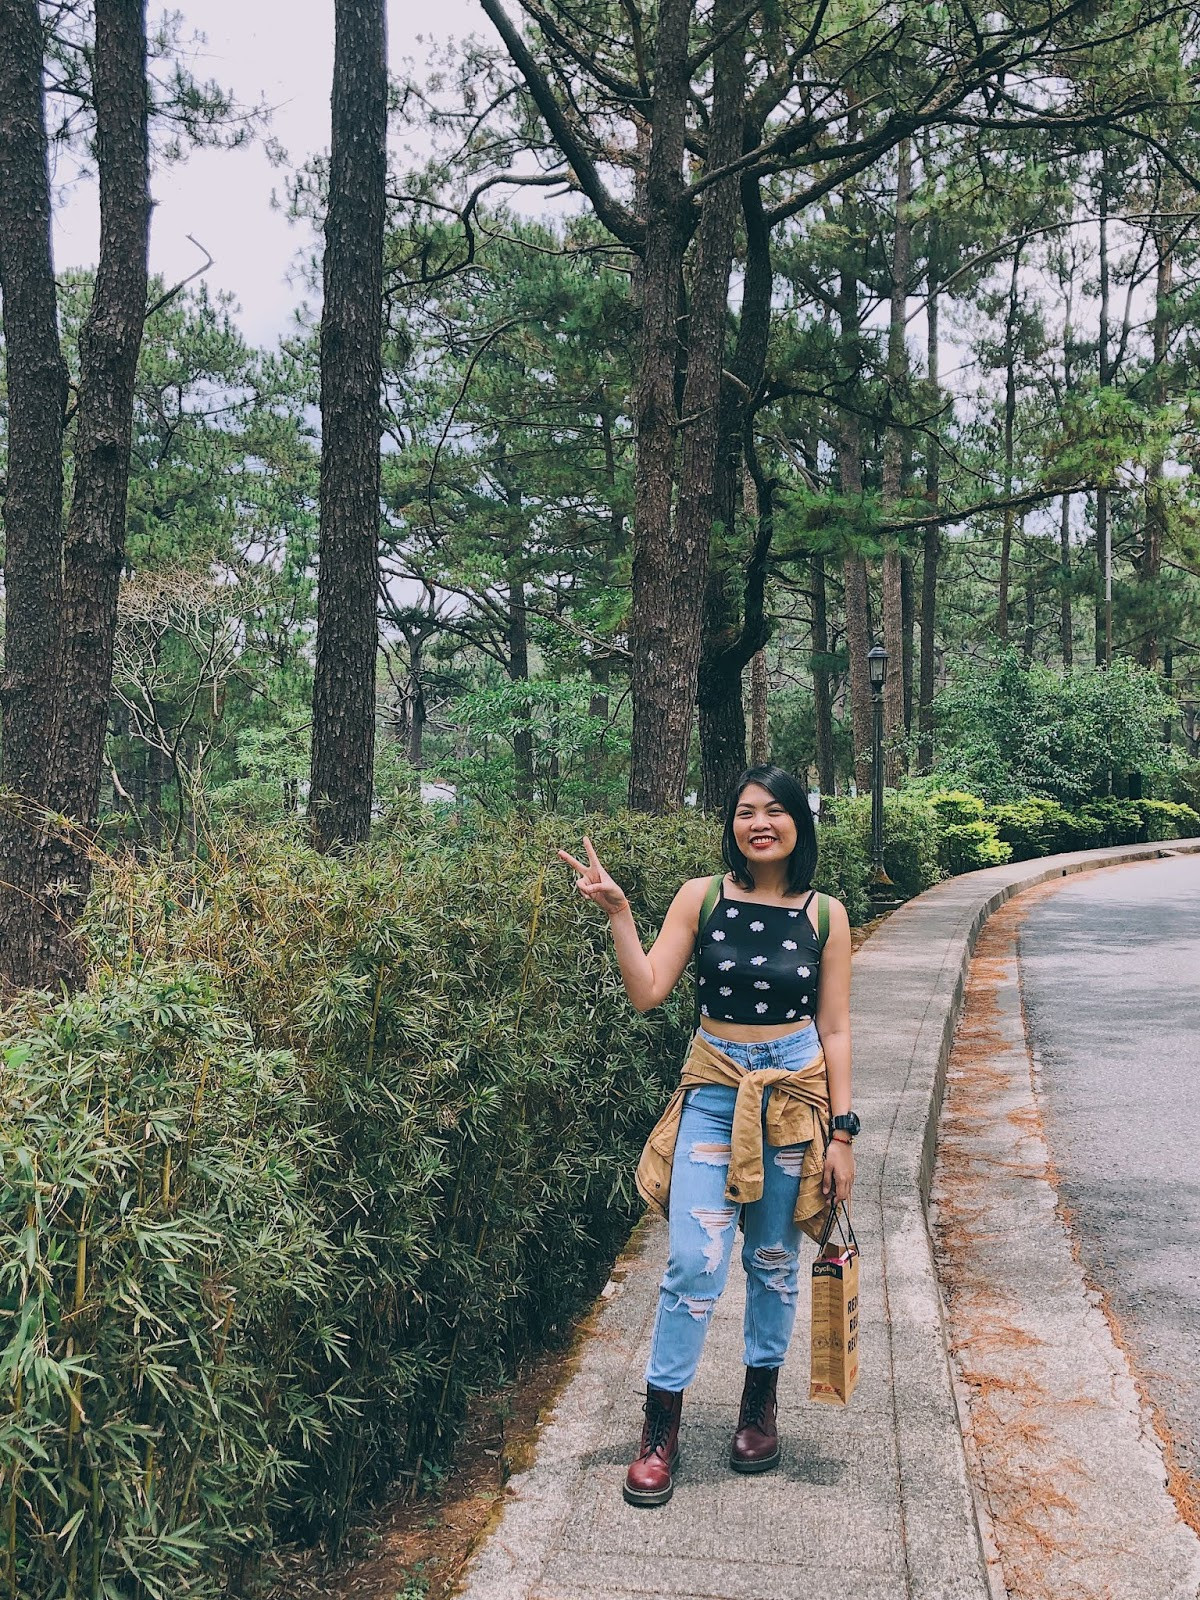 Strolling in Camp John Hay